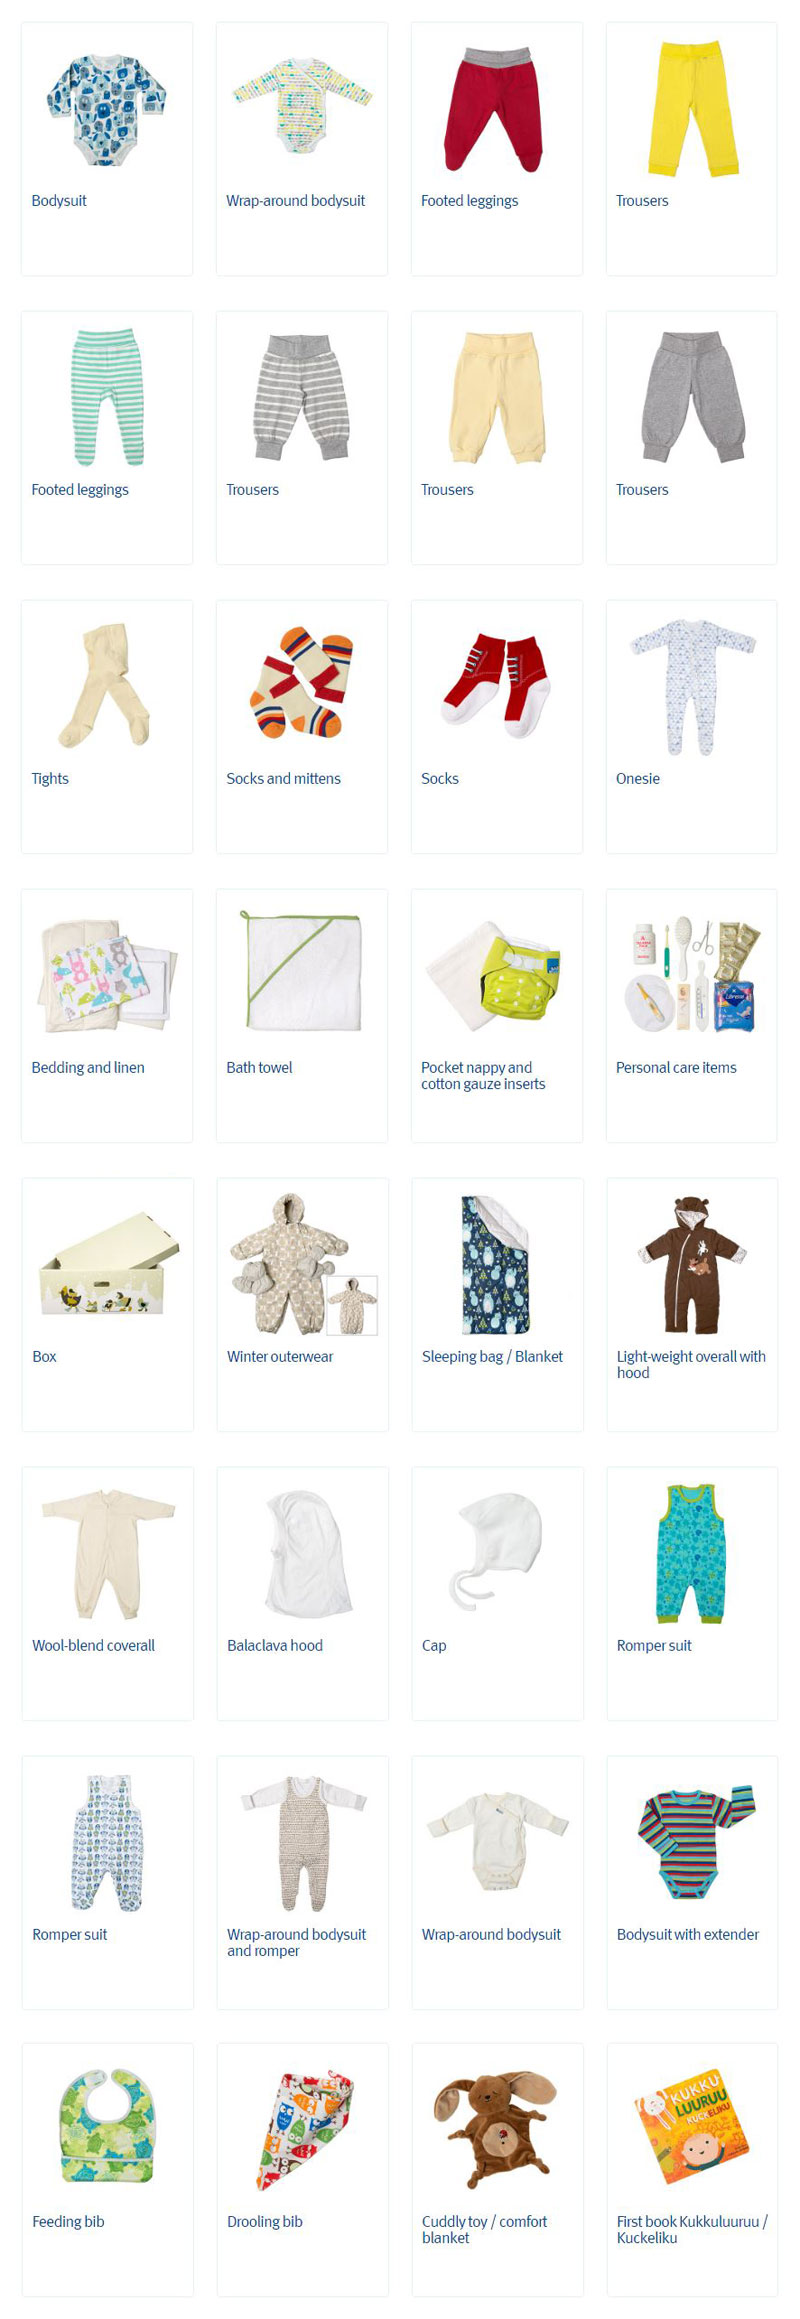 baby box finland 2 Starting Next Year, Every Baby Born in Scotland Will Get a Free Box of Useful Things